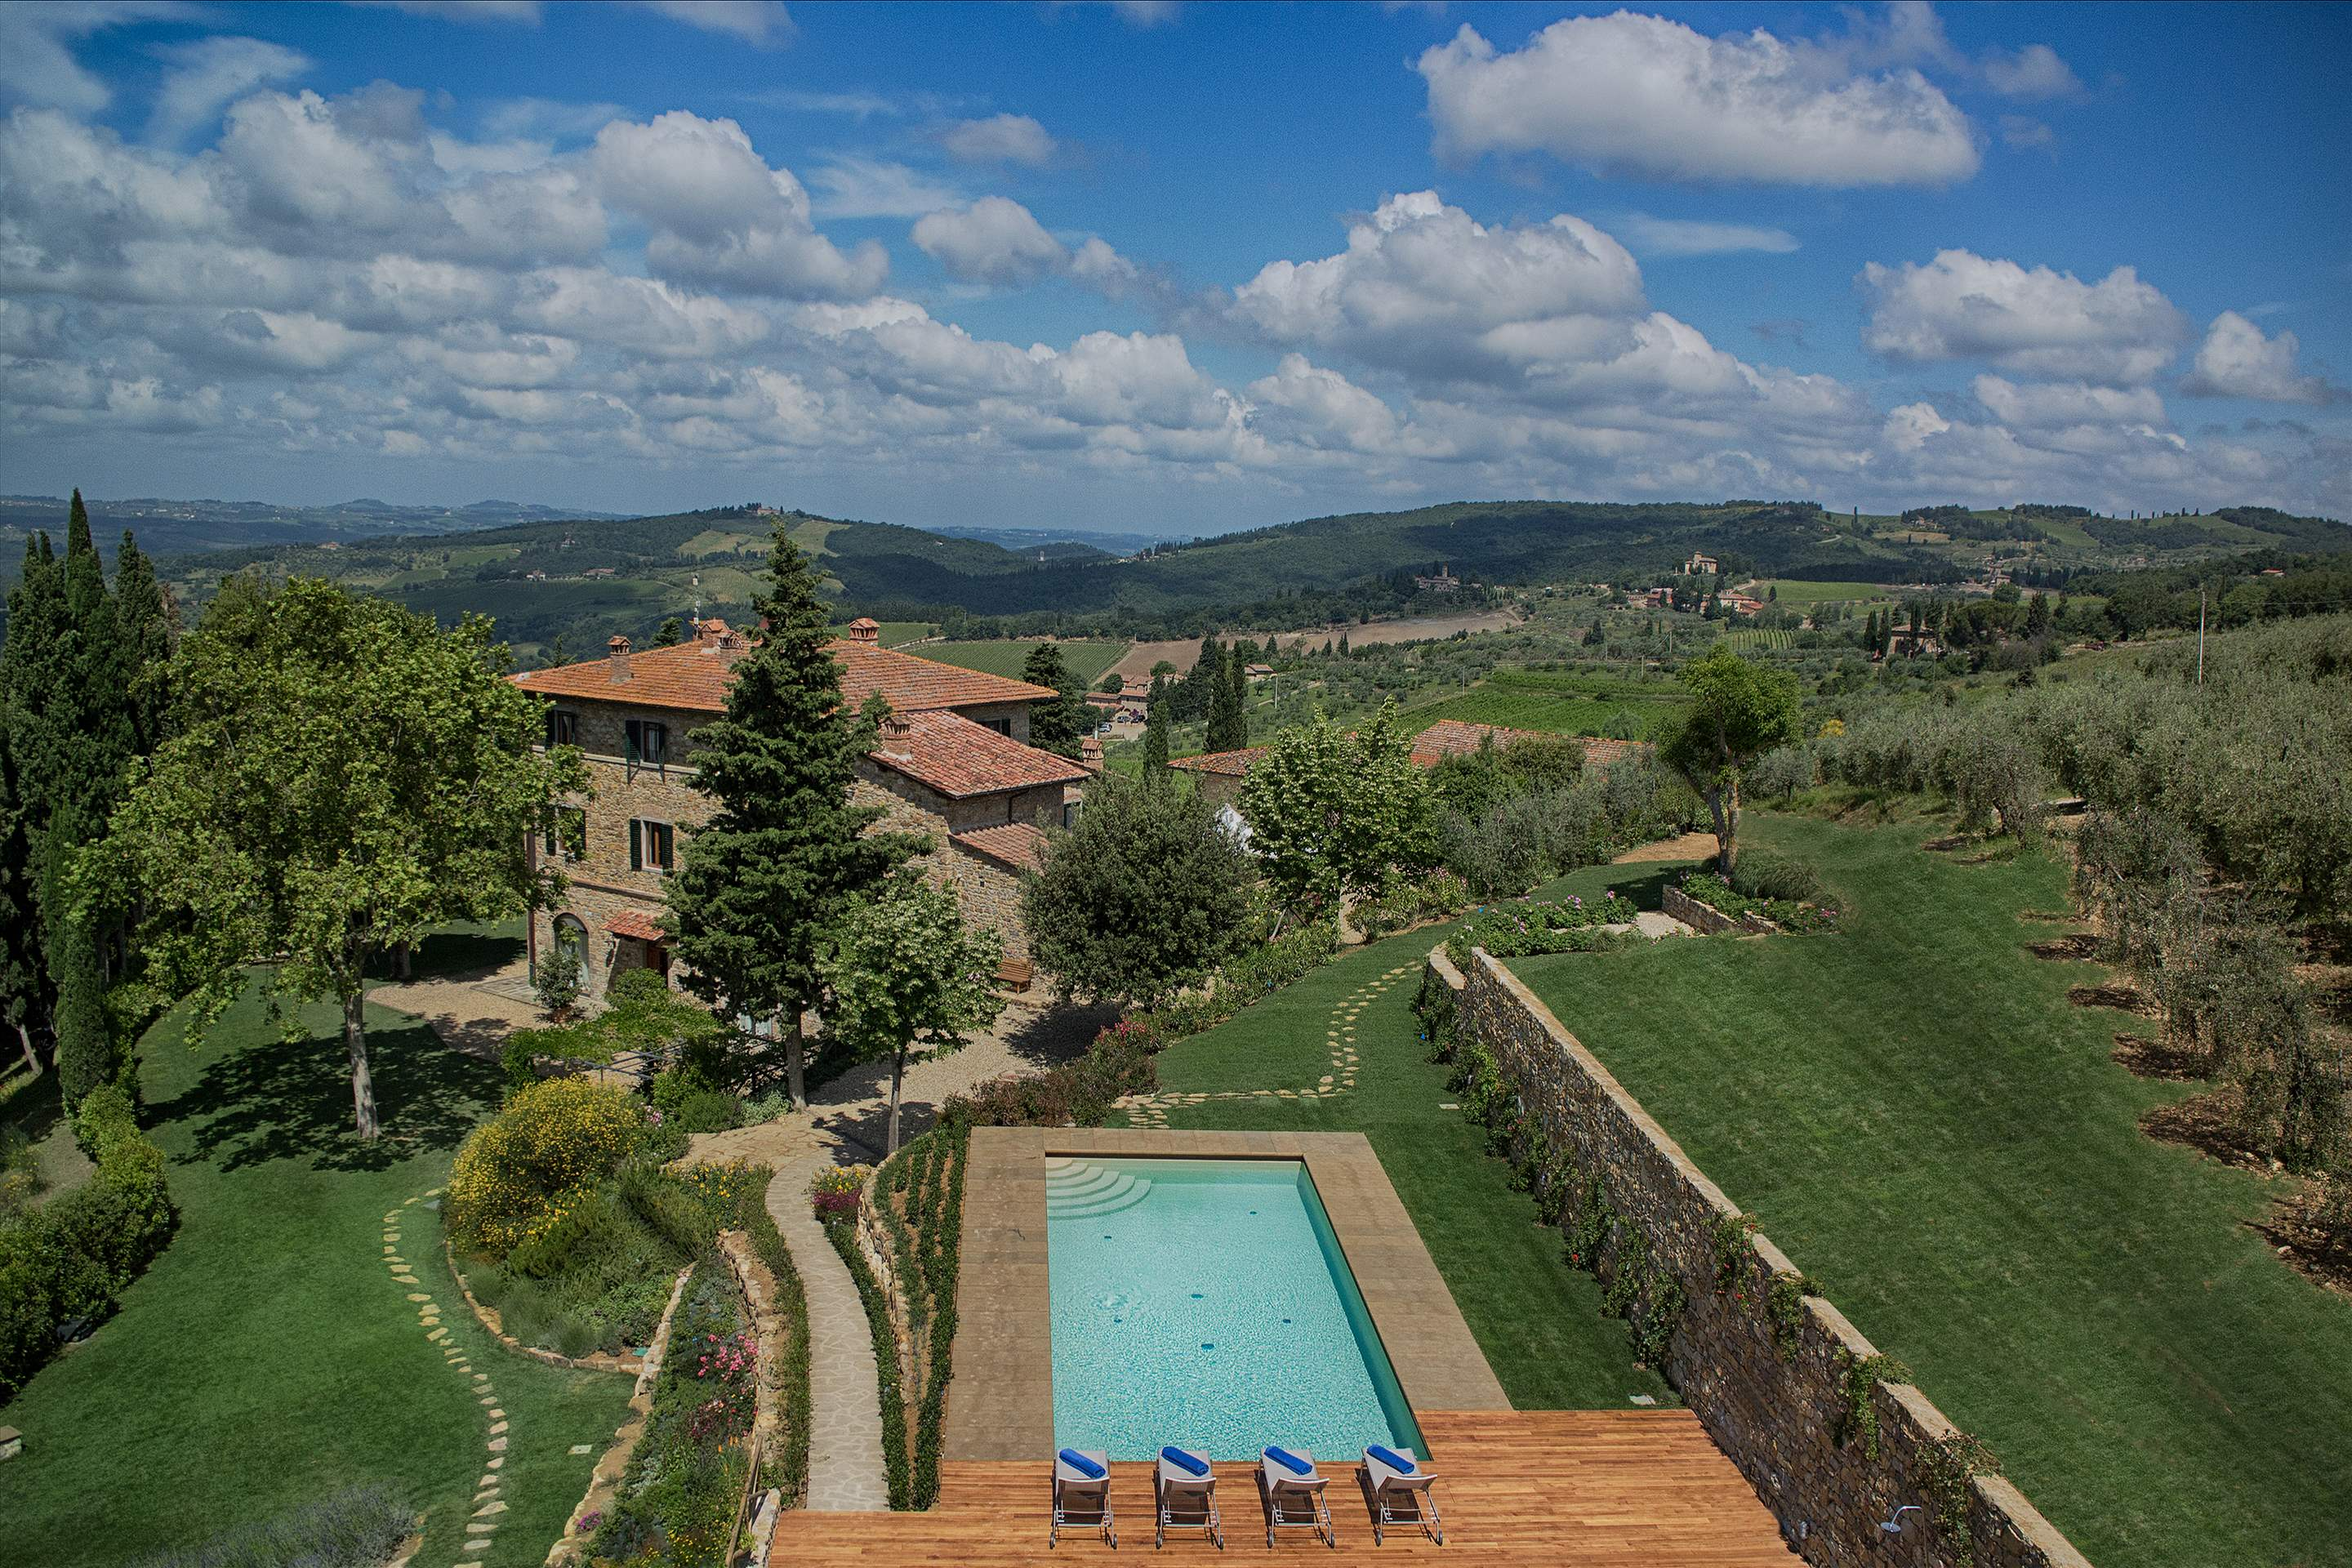 Villa La Valetta, 1 Bed Apt Uva, 1 bedroom villa in Chianti & Countryside, Tuscany Photo #12